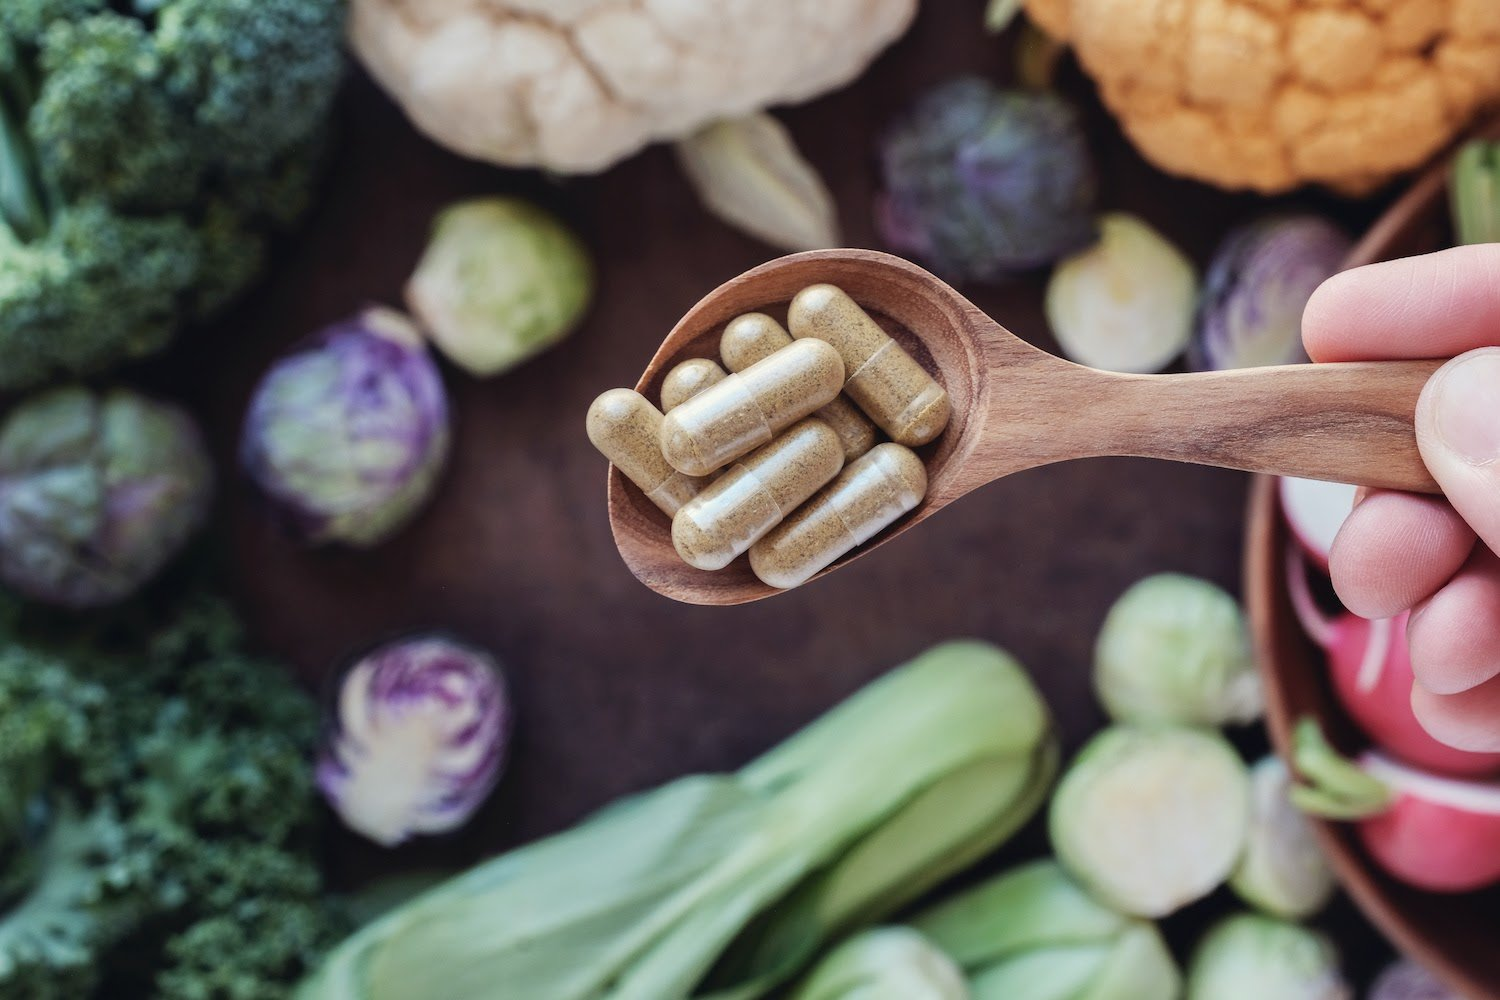 Digestive enzyme supplements in a spoon